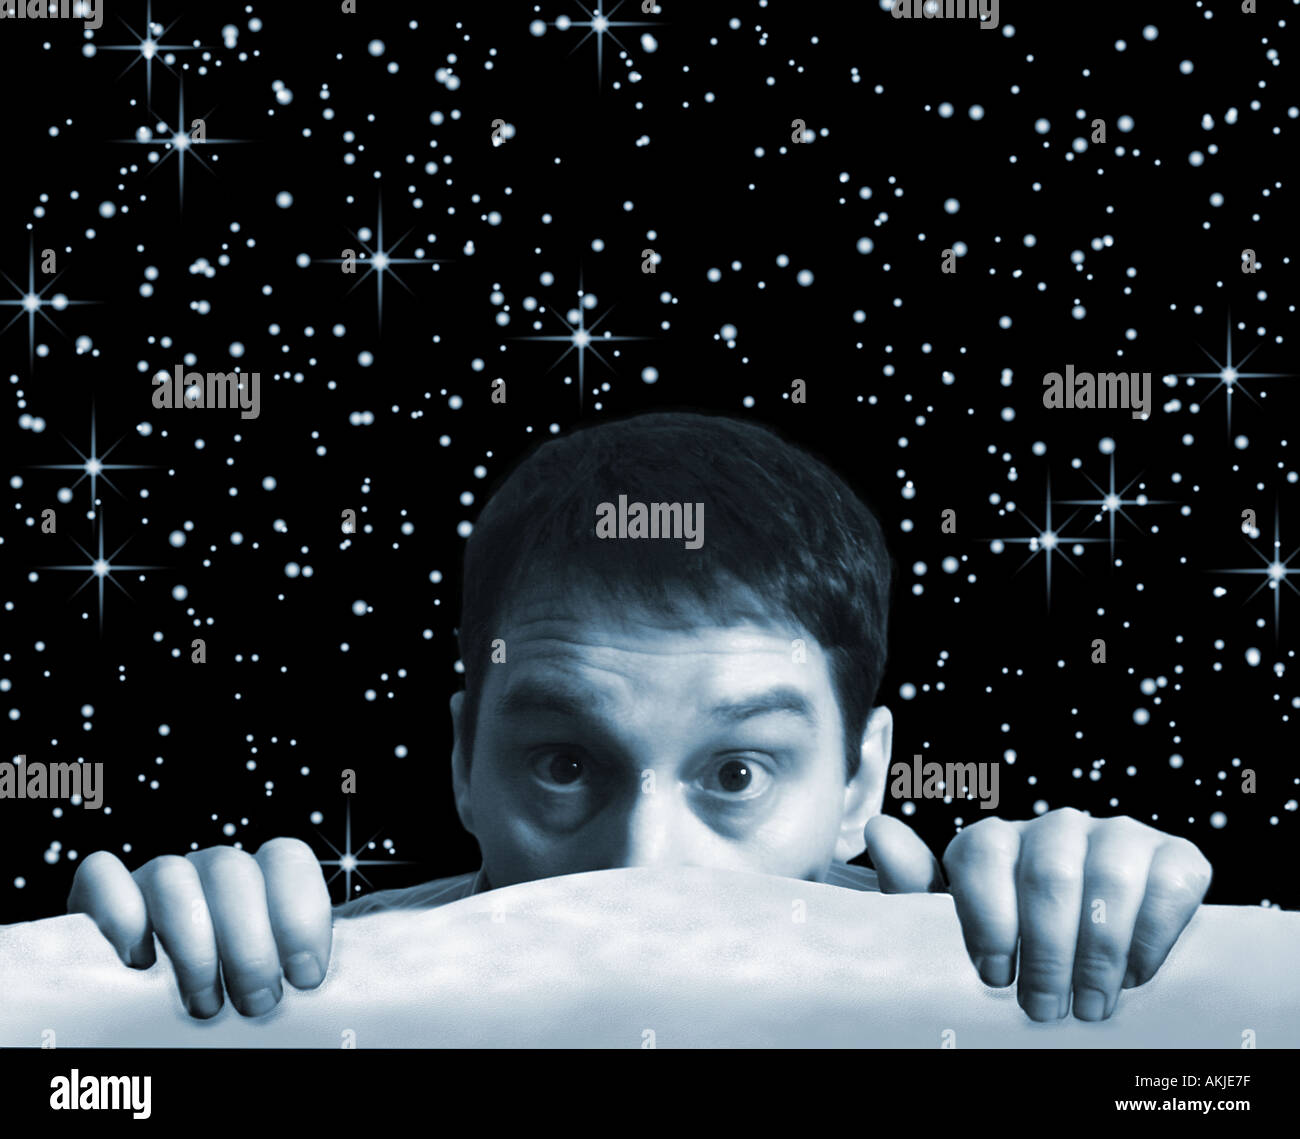 Composite with man in cold outside with star strewn sky - Stock Image